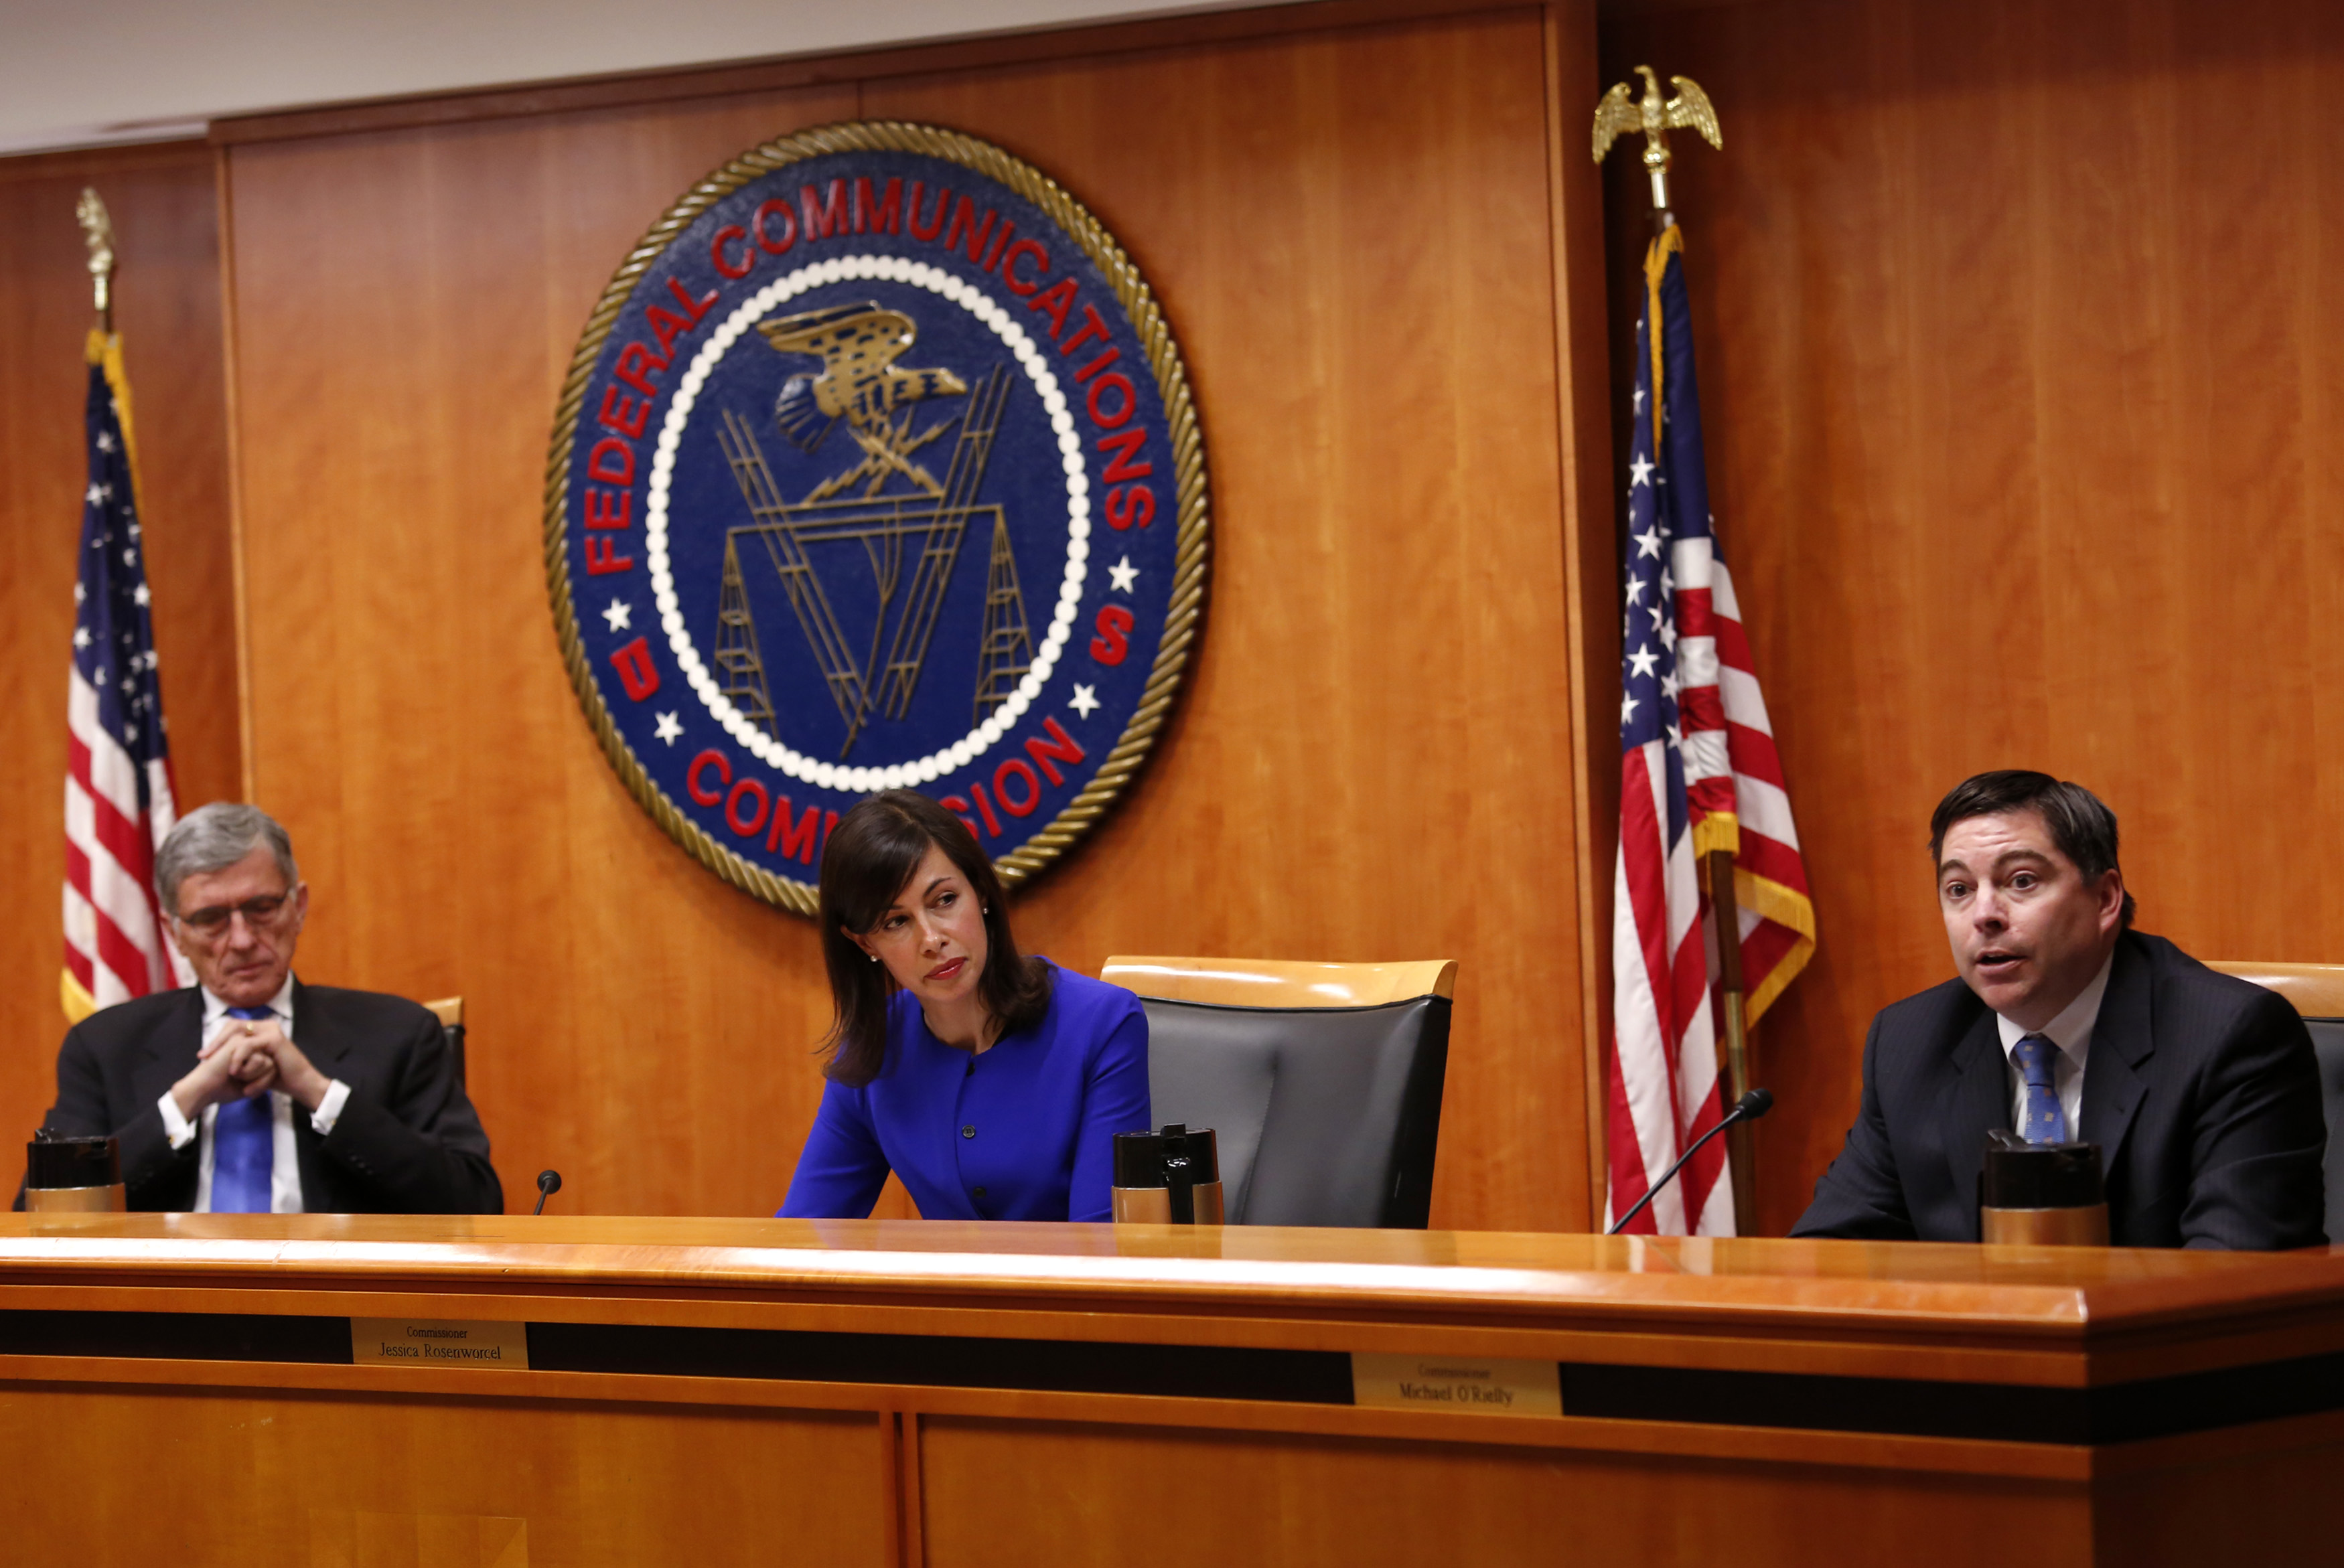 Federal Communications Commission commissioner Michael O'Rielly speaks at a FCC Net Neutrality hearing in Washington